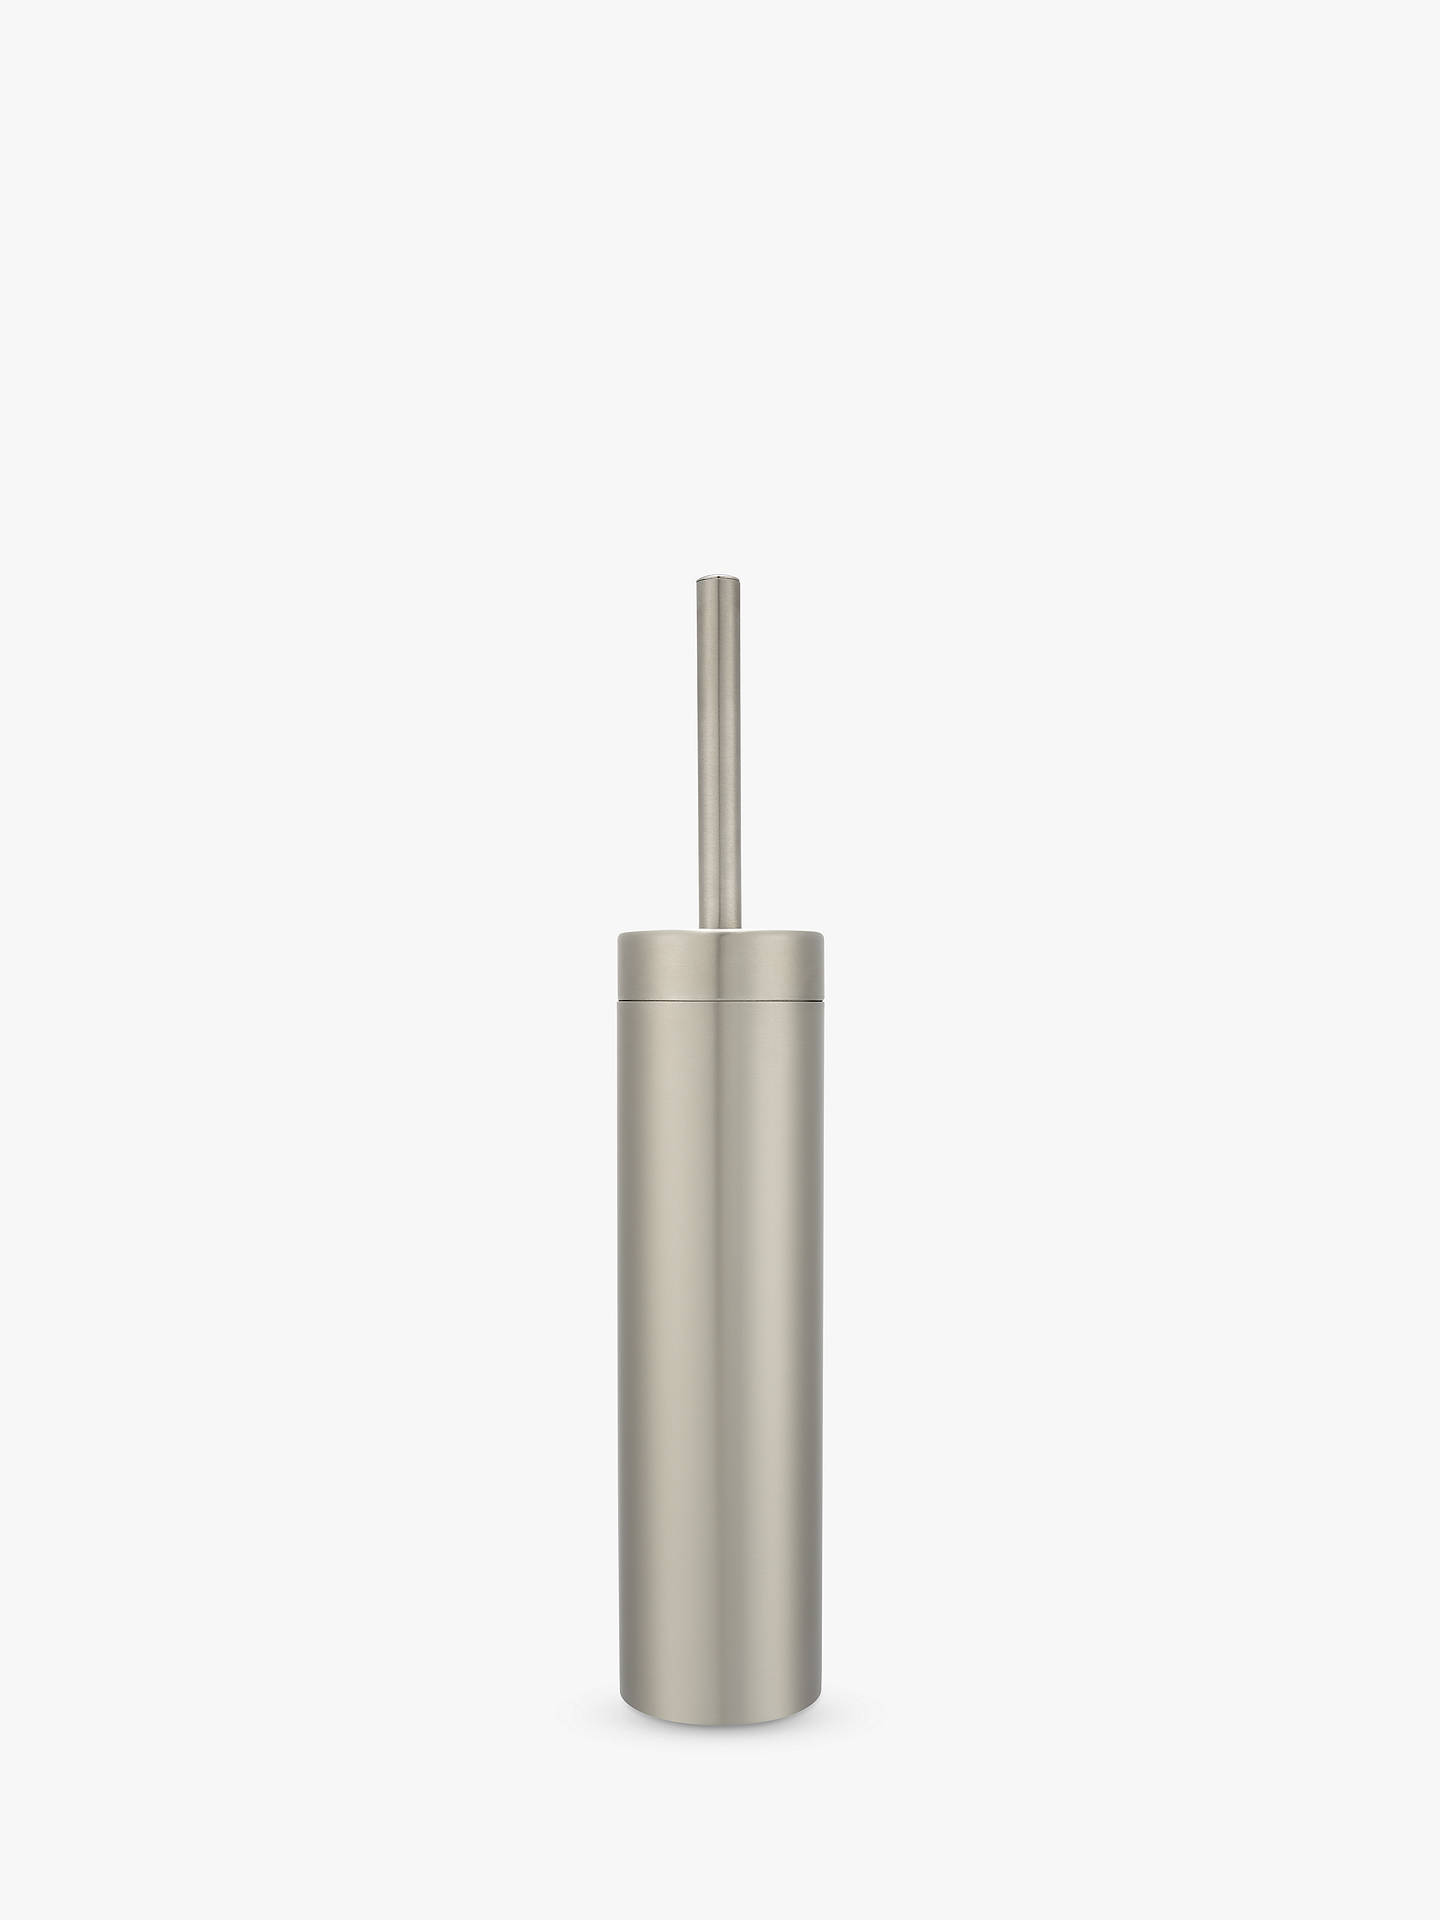 23a2de40950a Buy John Lewis Slim 18/8 304 Stainless Steel Toilet Brush and Holder Online  at ...